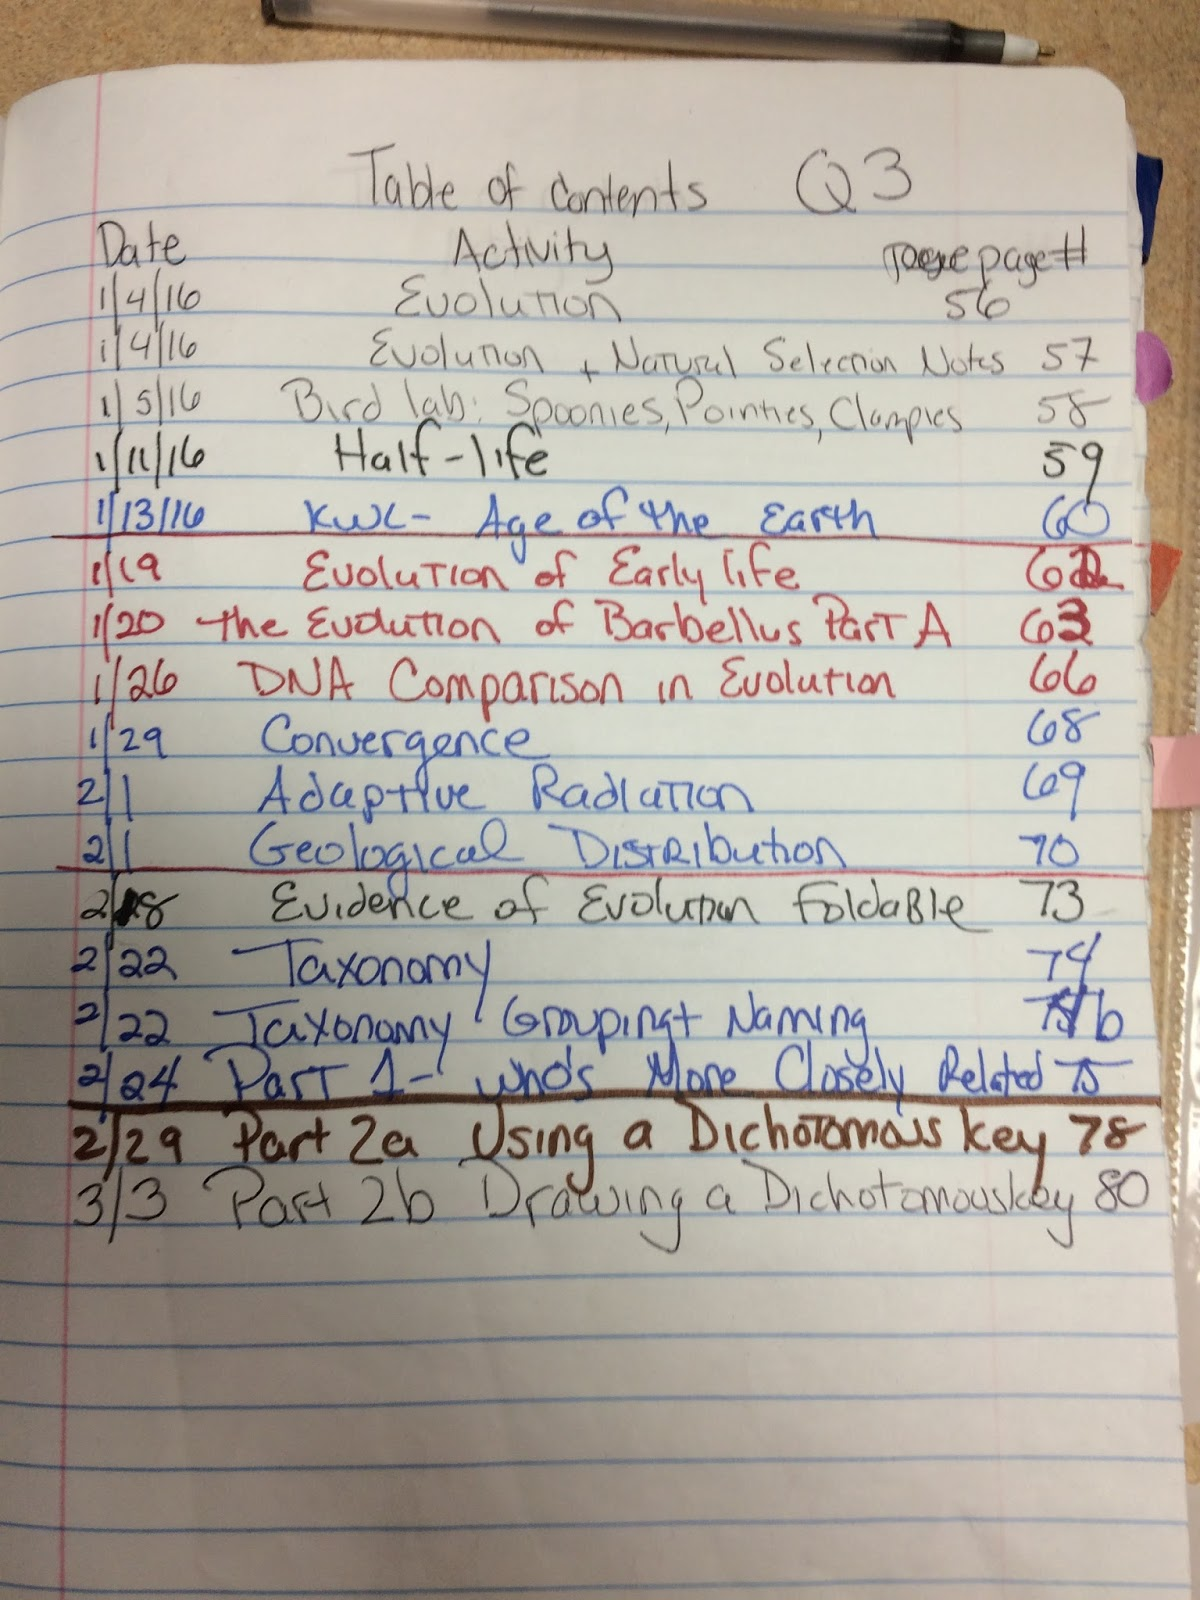 Mrs Greeley Howard S Biology Class Part 2b How To Write A Dichotomous Key